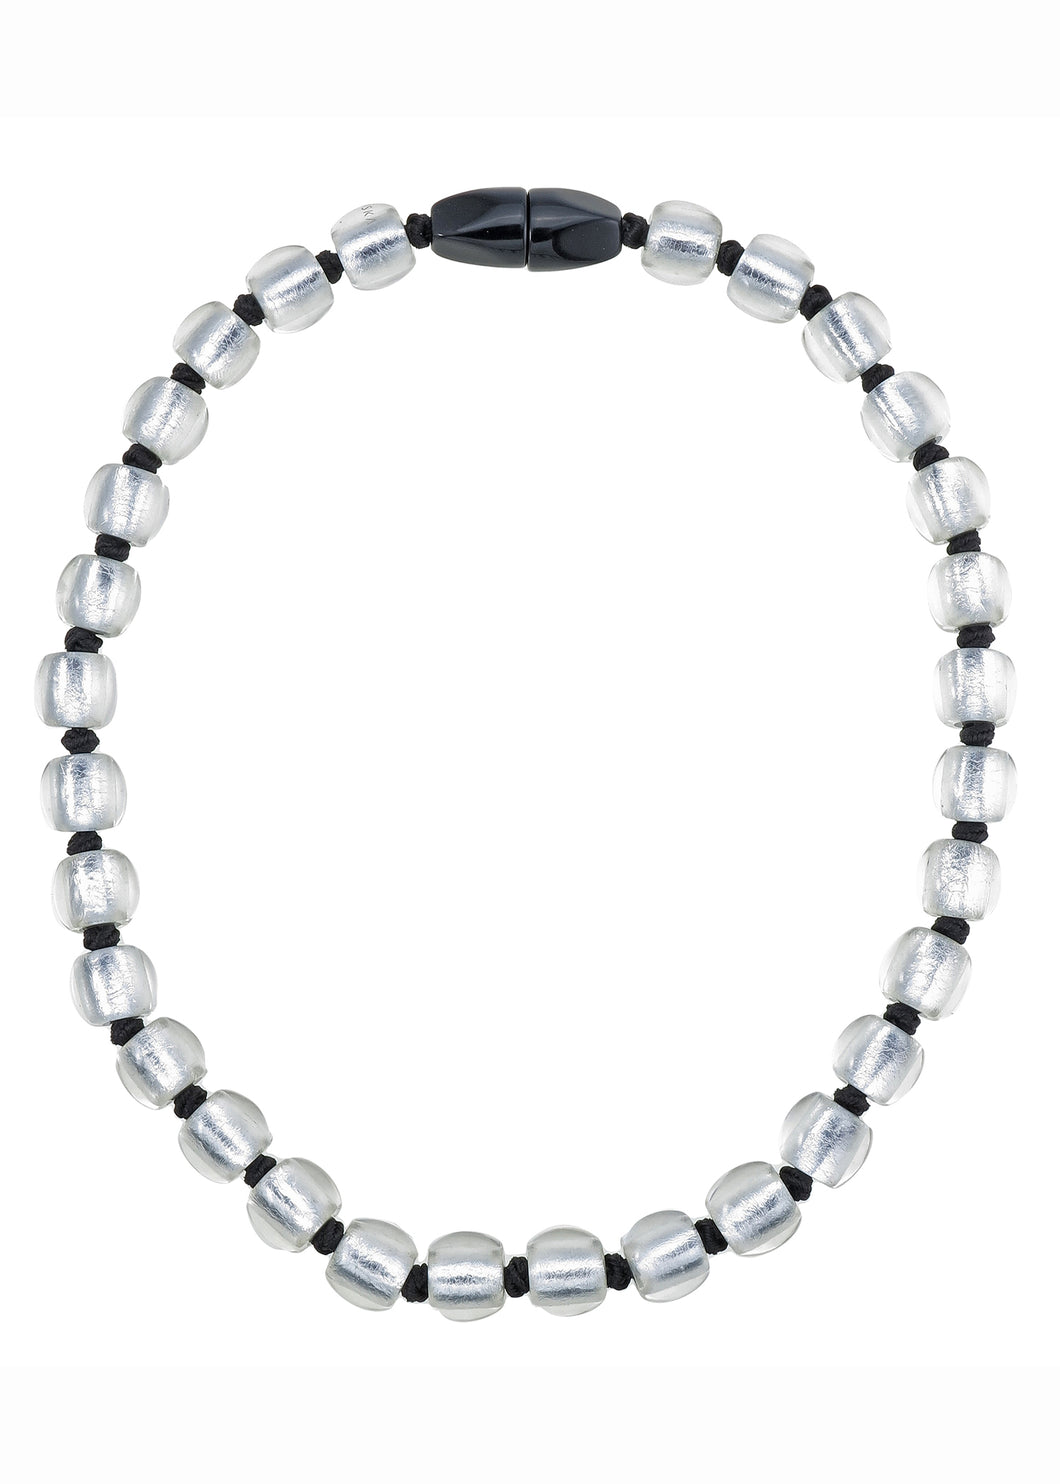 Precious Necklace - 30 Beads - Silver